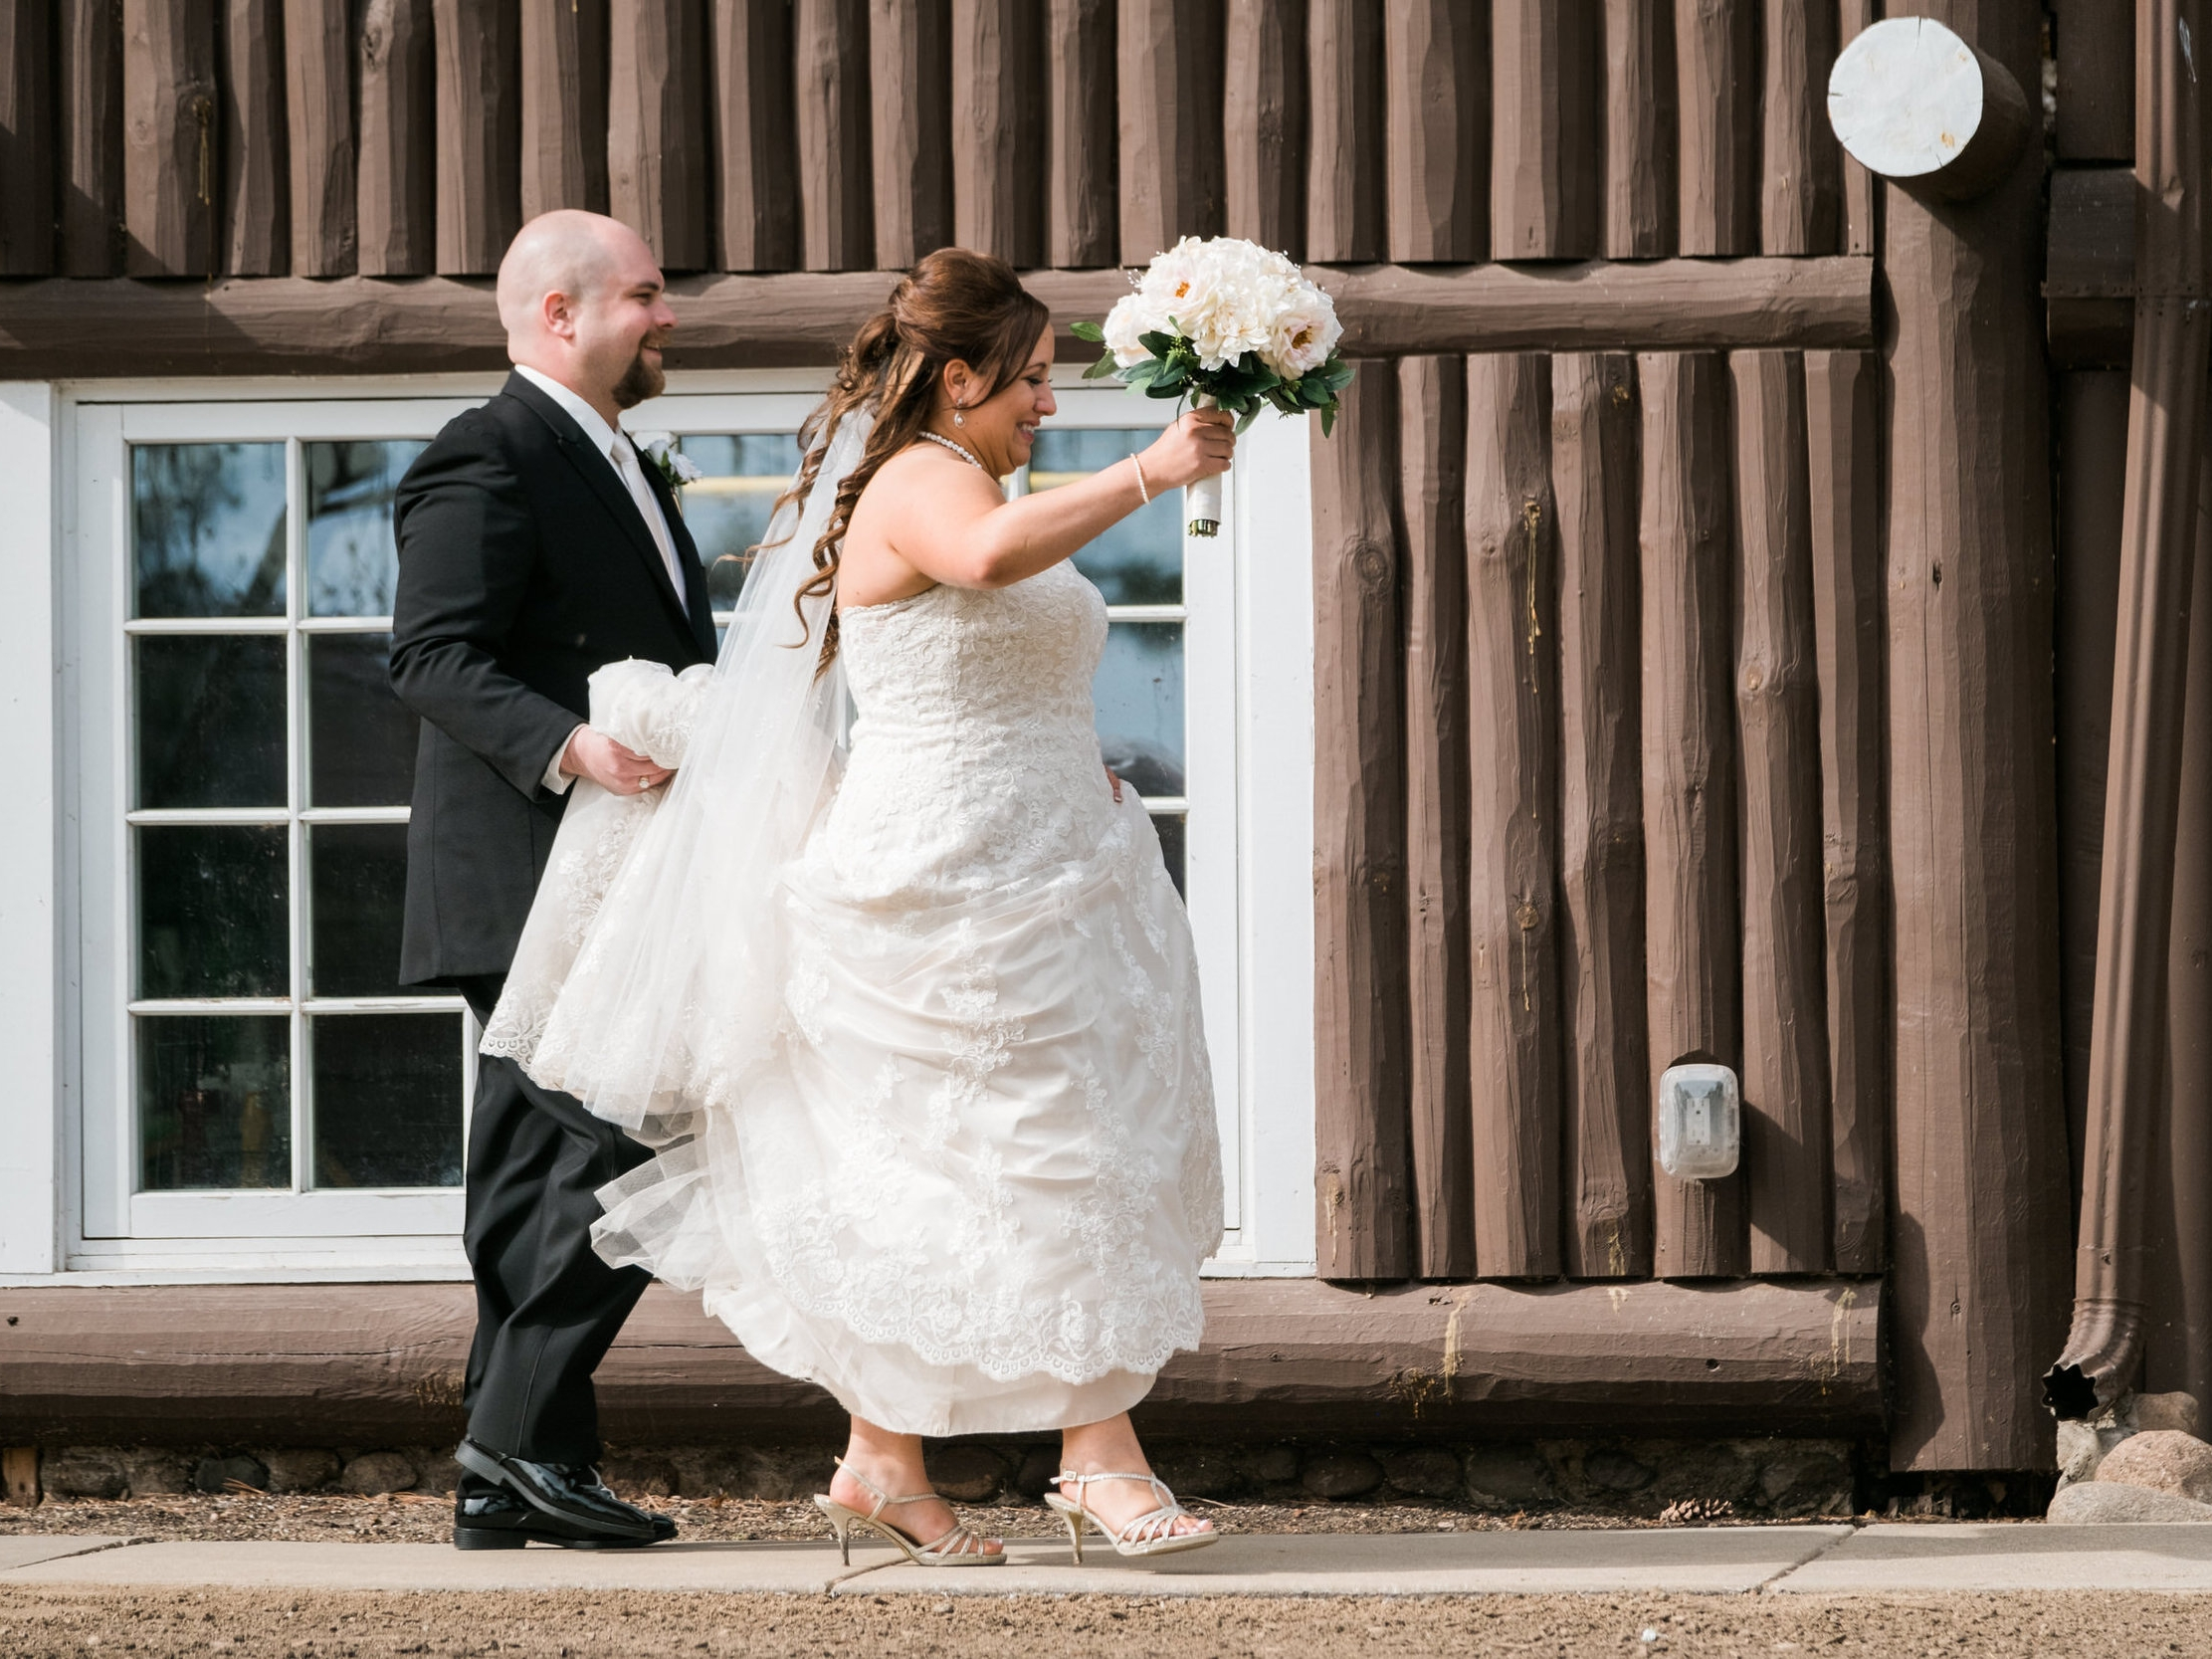 Lakeview wedding in Northern MN at Grand View Lodge